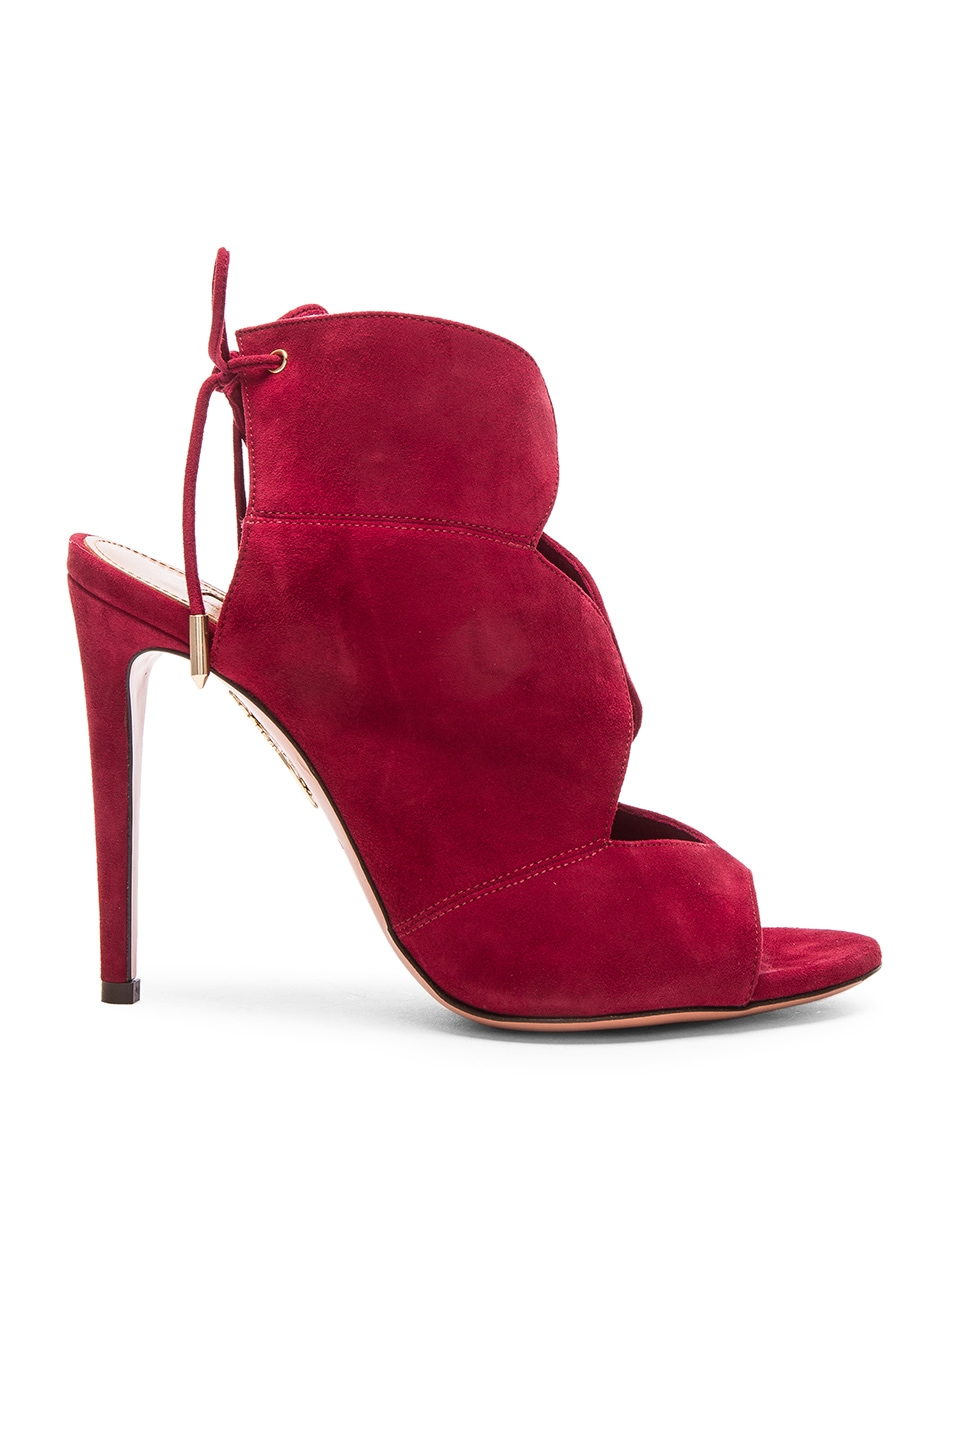 Image 1 of Aquazzura Suede Pasadena Heels in Pomegranate